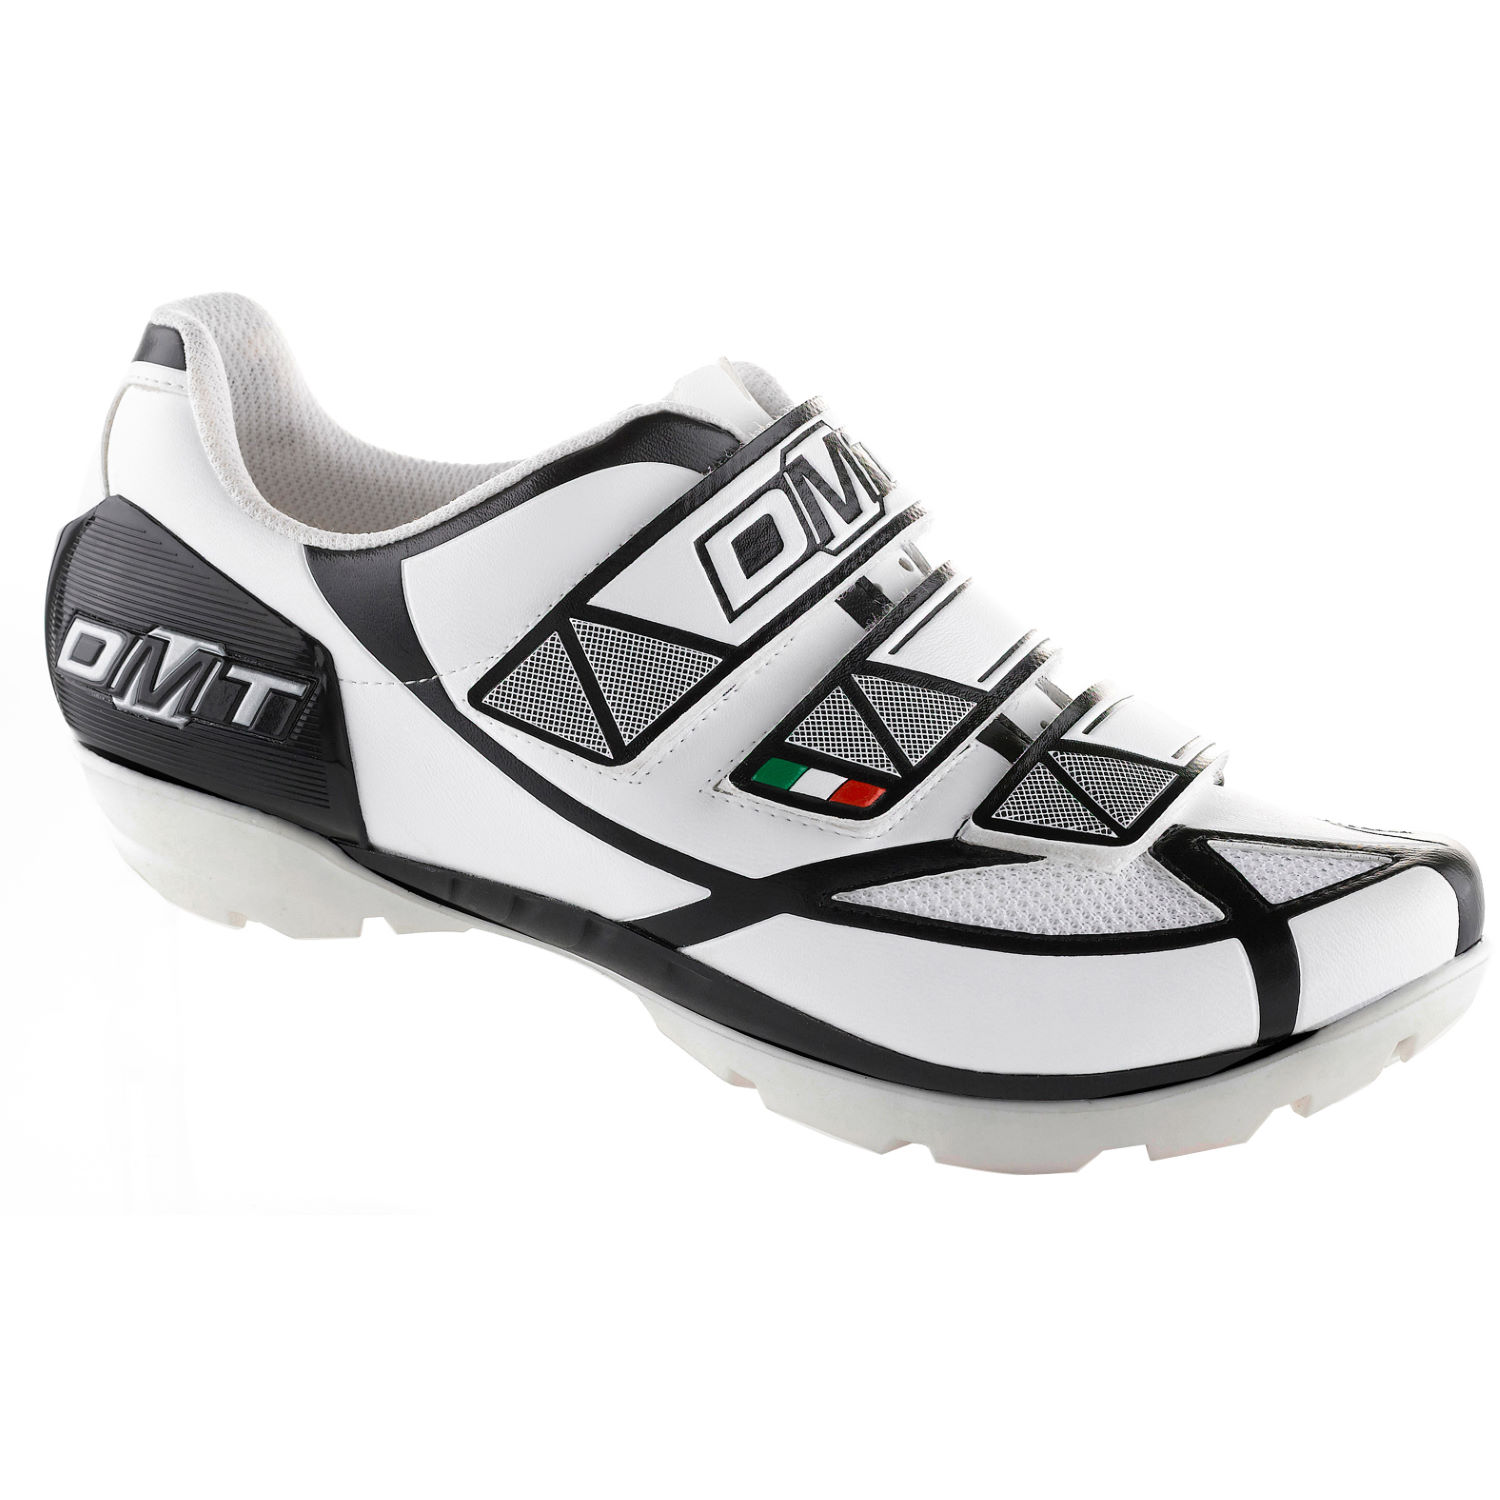 zapatillas spinning dmt orion